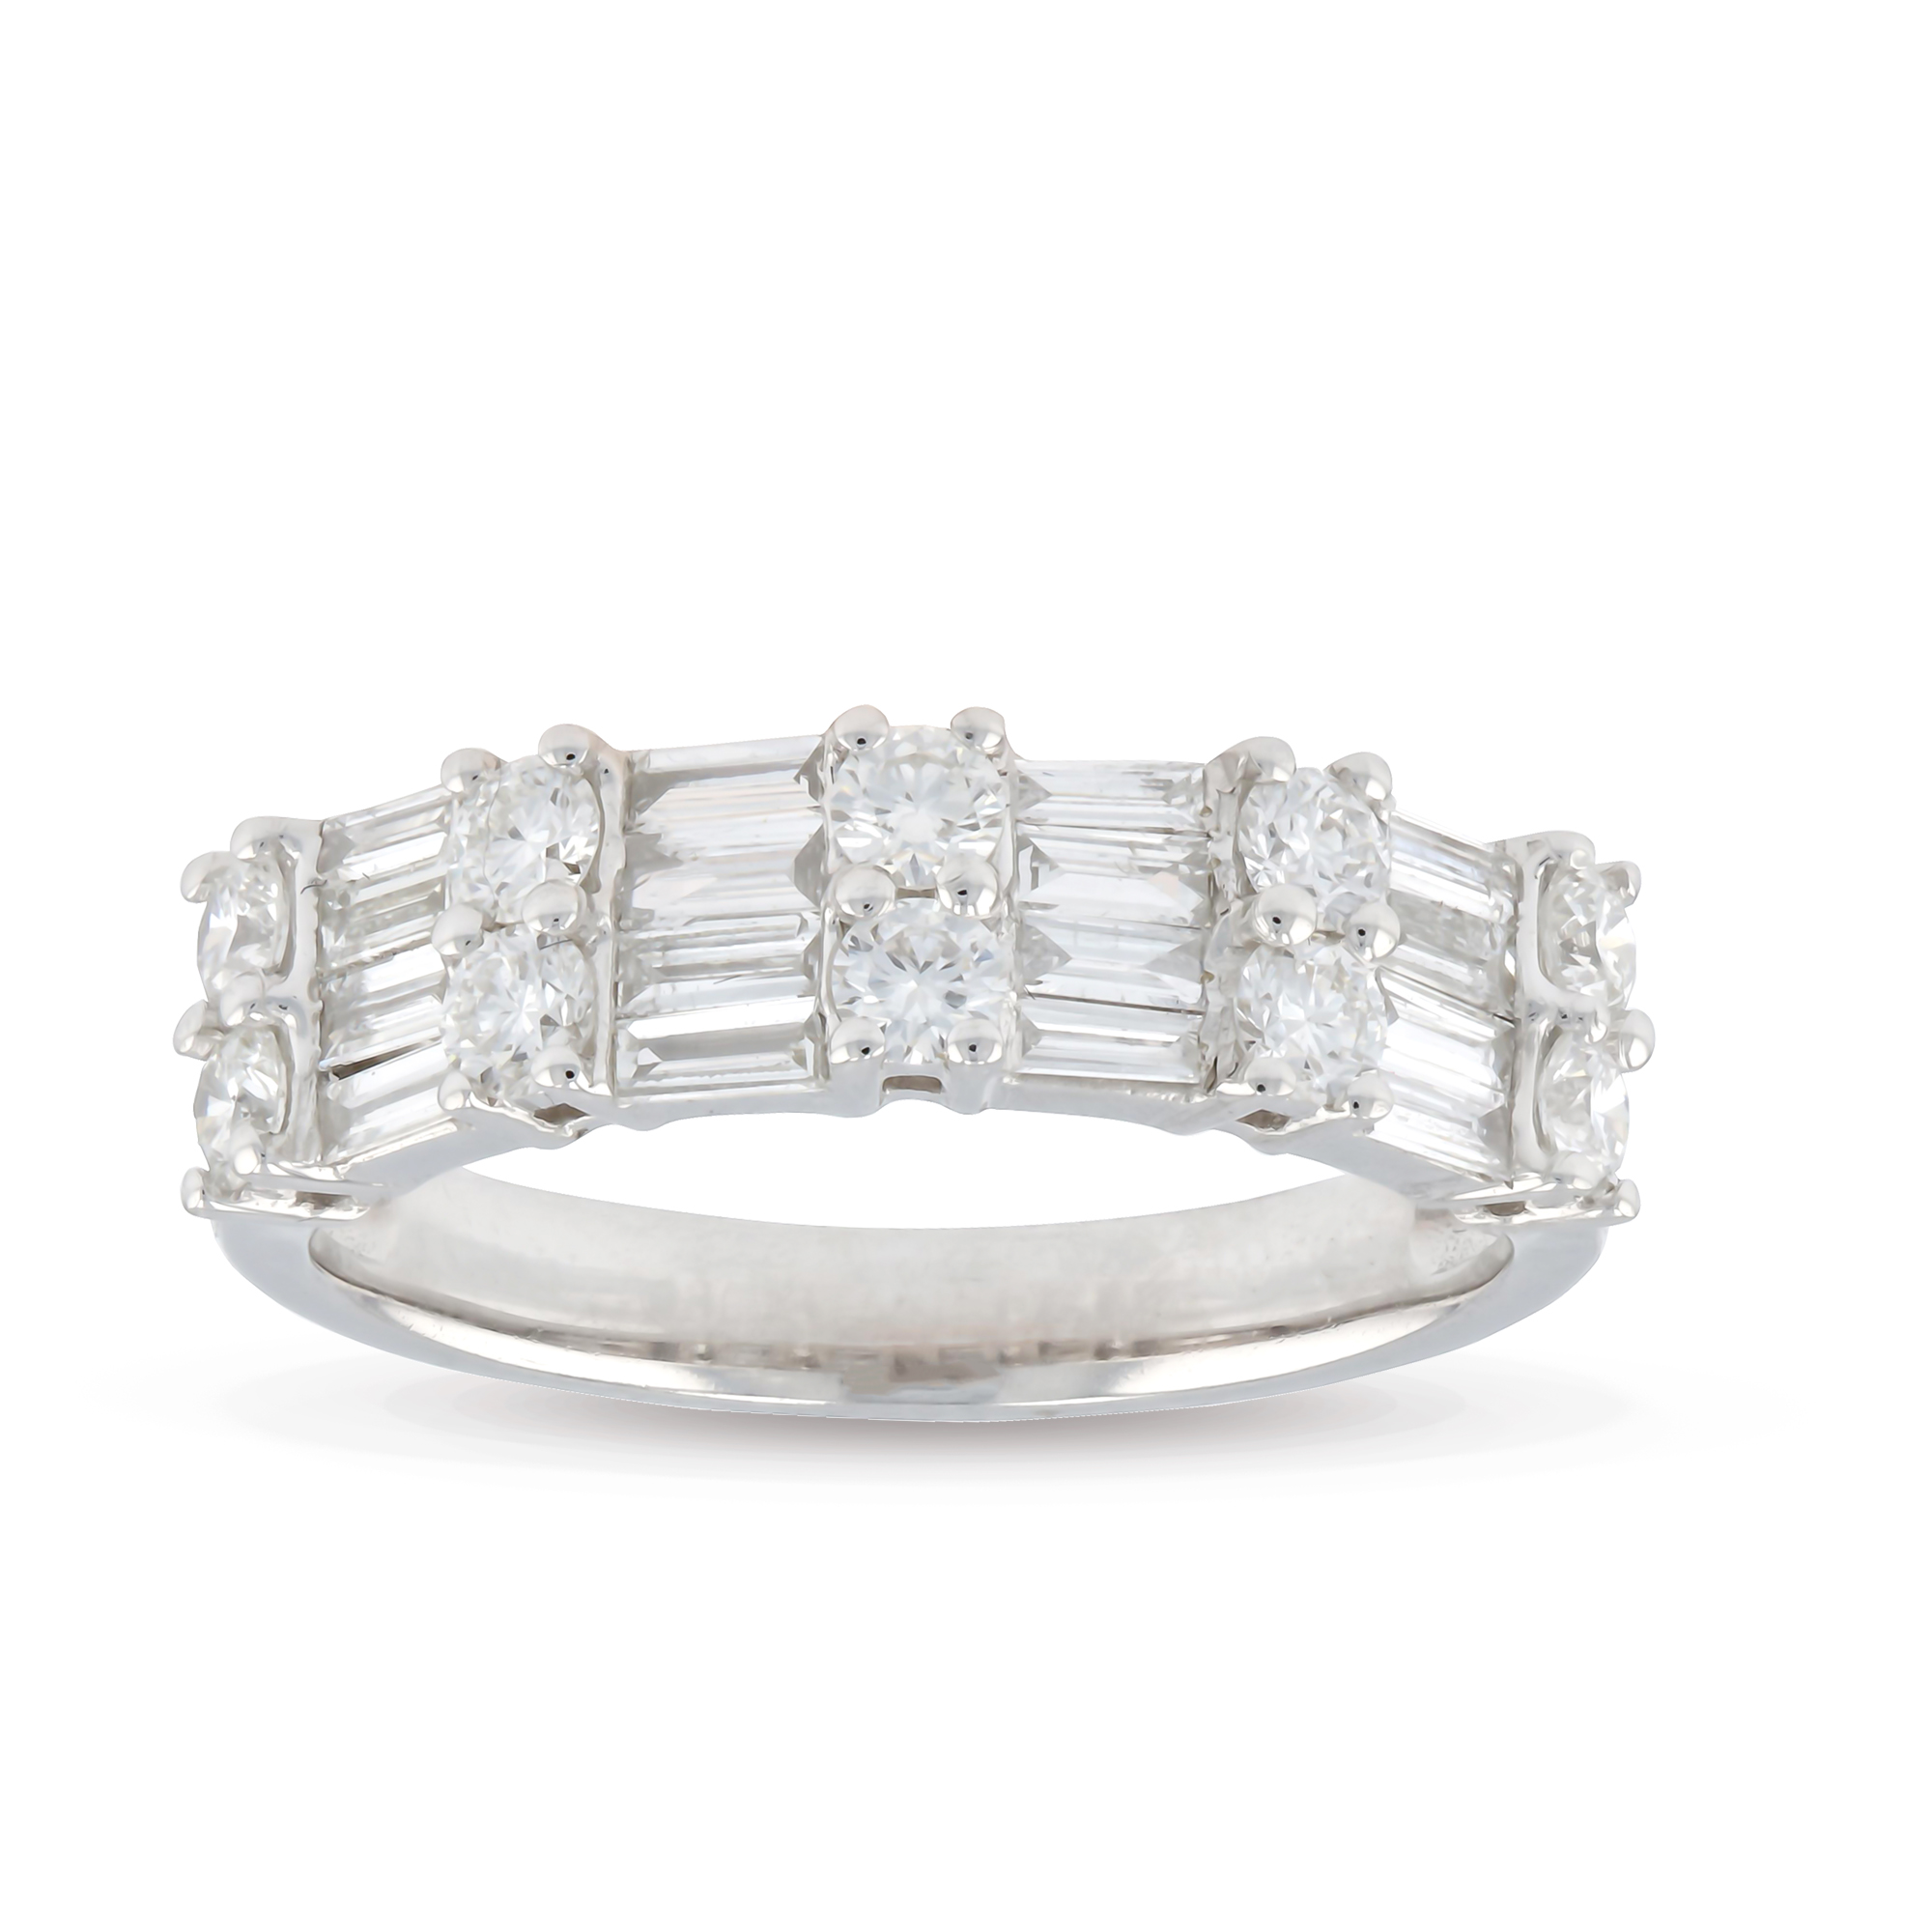 View 0.99ctw Diamond Fashion Band in 18k White Gold